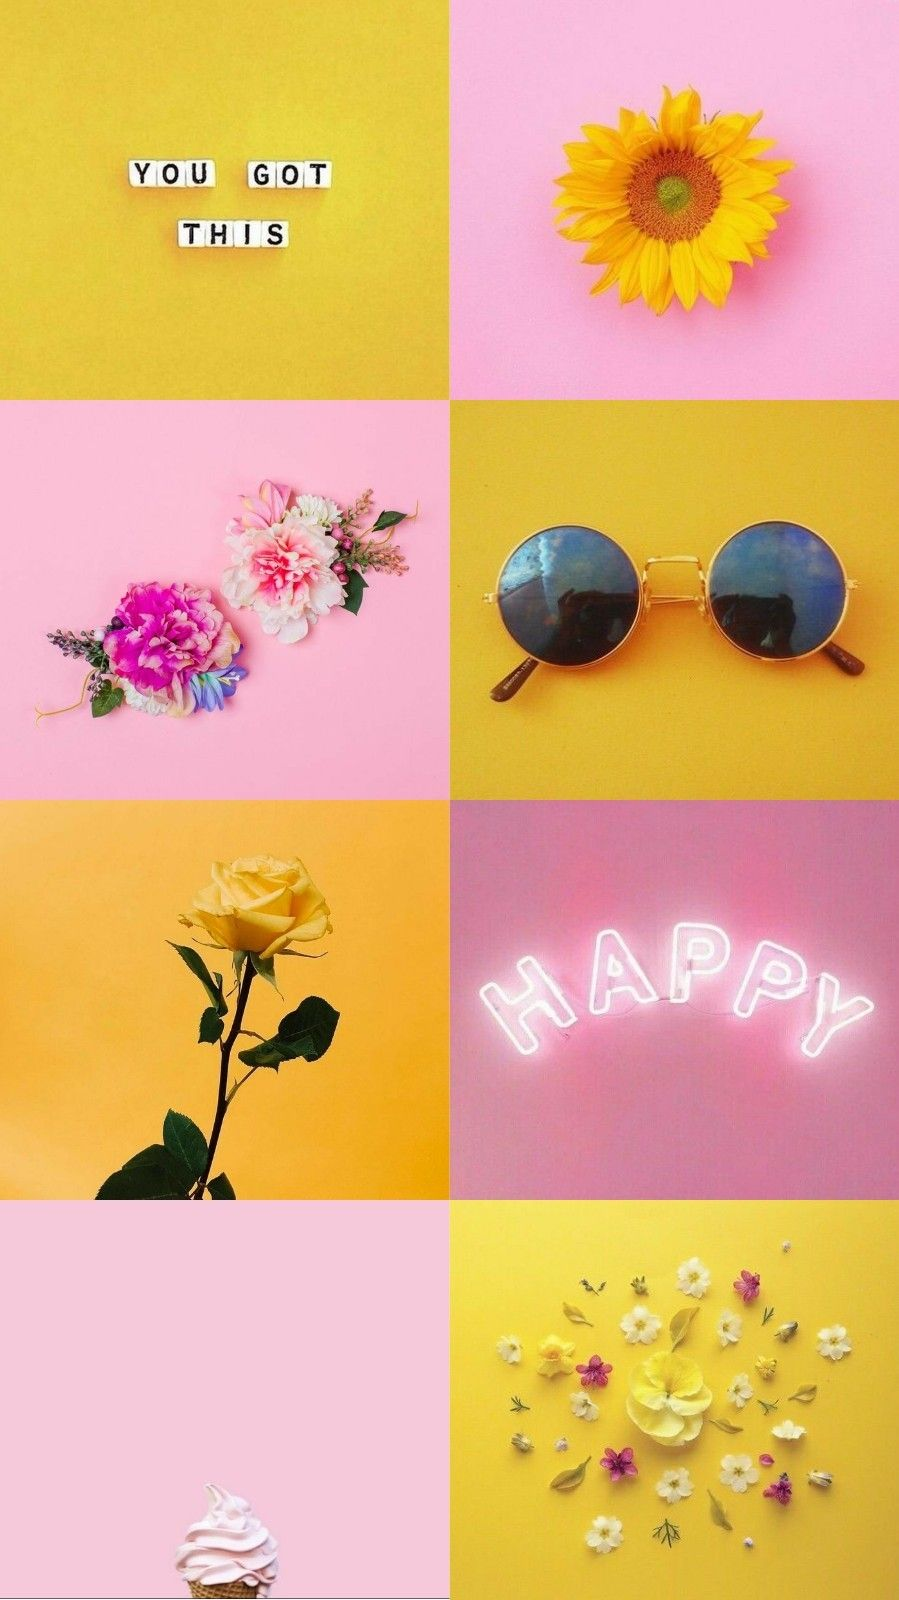 Aesthetic Wallpapers St 0419 Requested A Pink And Yellow Aesthetic Pink Wallpaper Iphone Iphone Wallpaper Yellow Yellow Aesthetic Pastel